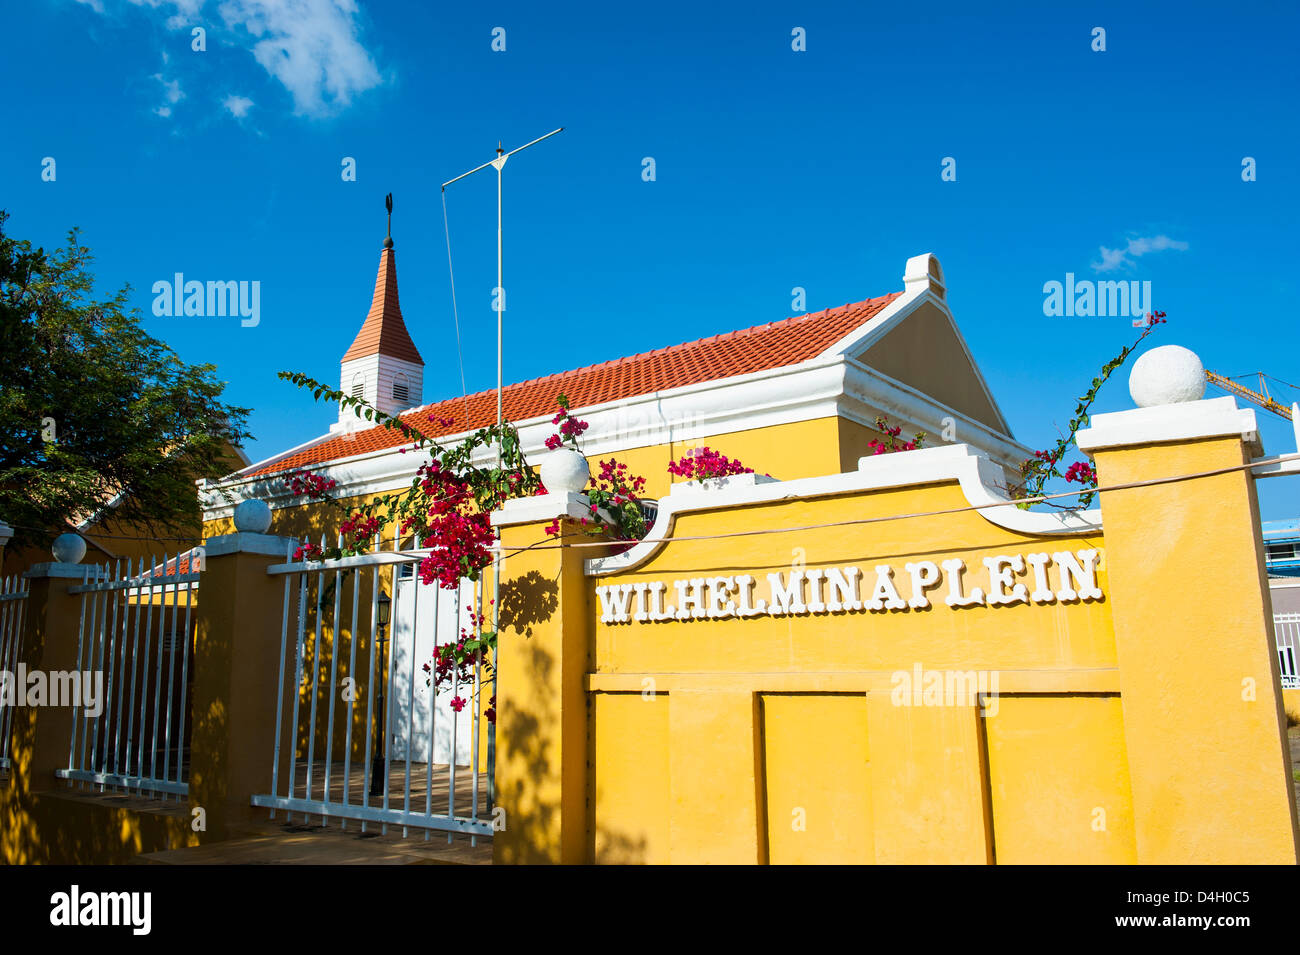 Dutch architecture in Kralendijk capital of Bonaire, ABC Islands, Netherlands Antilles, Caribbean - Stock Image